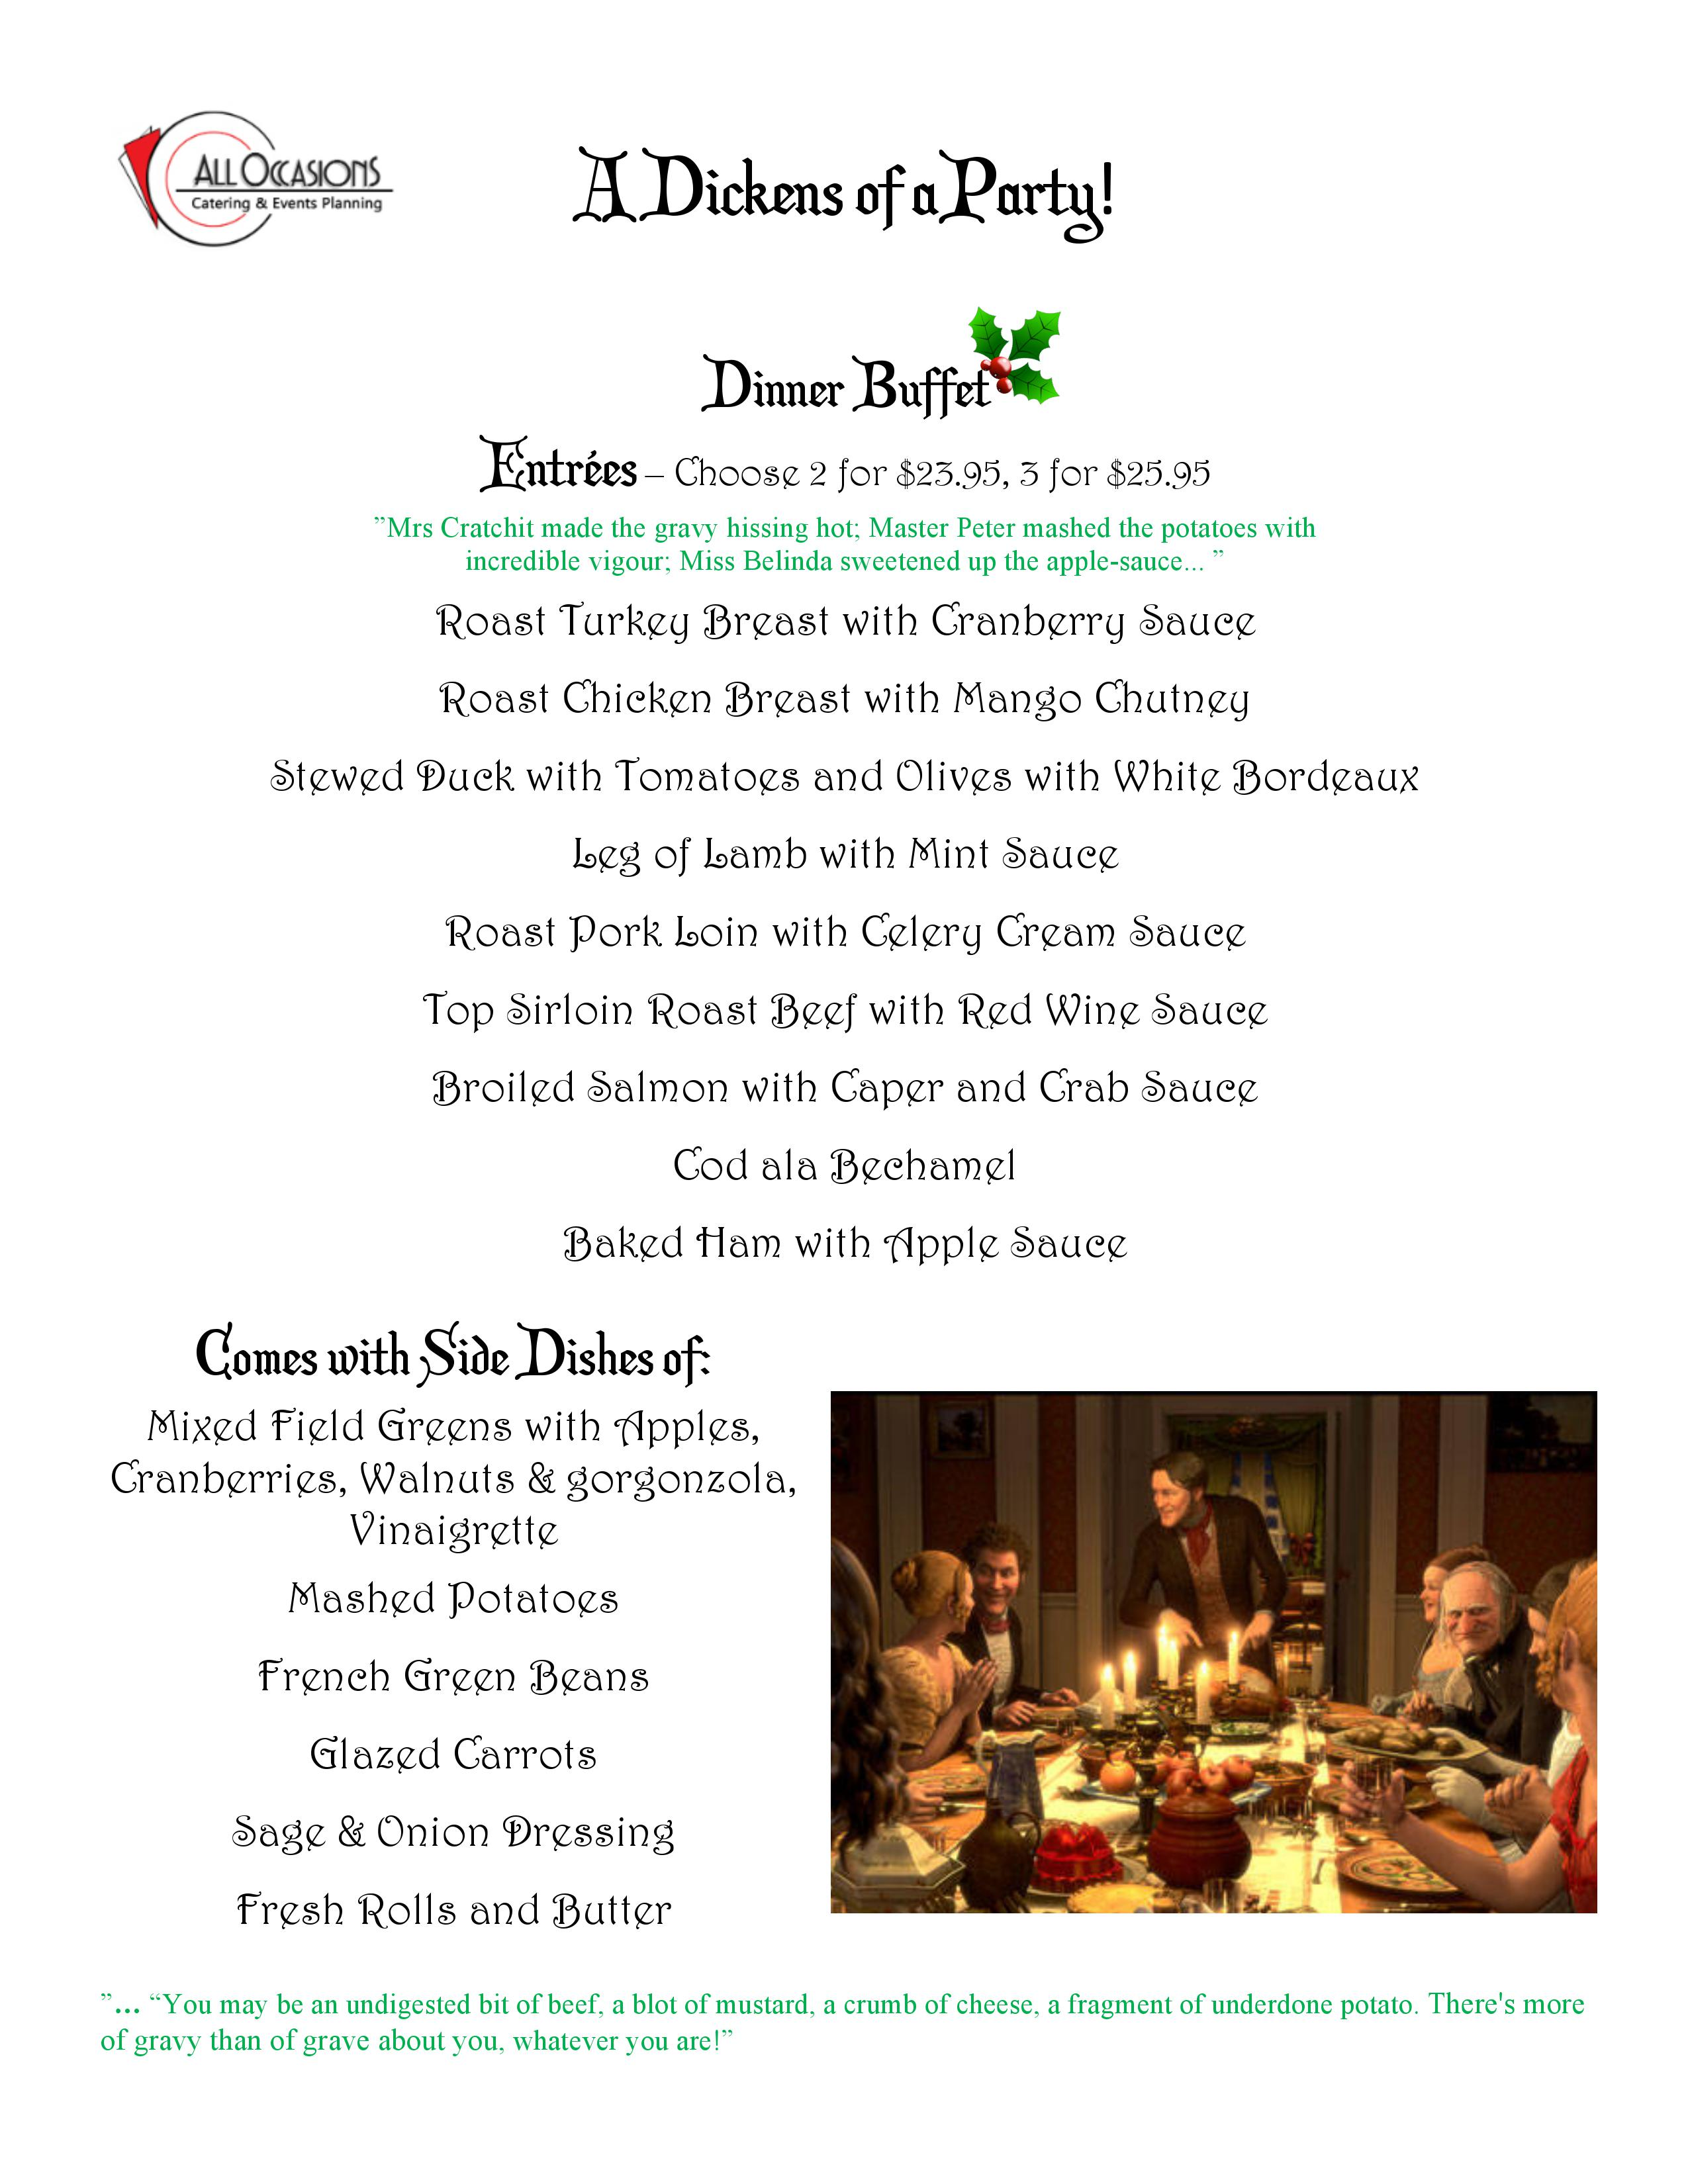 Holiday Dinner Menu, Christmas Menu